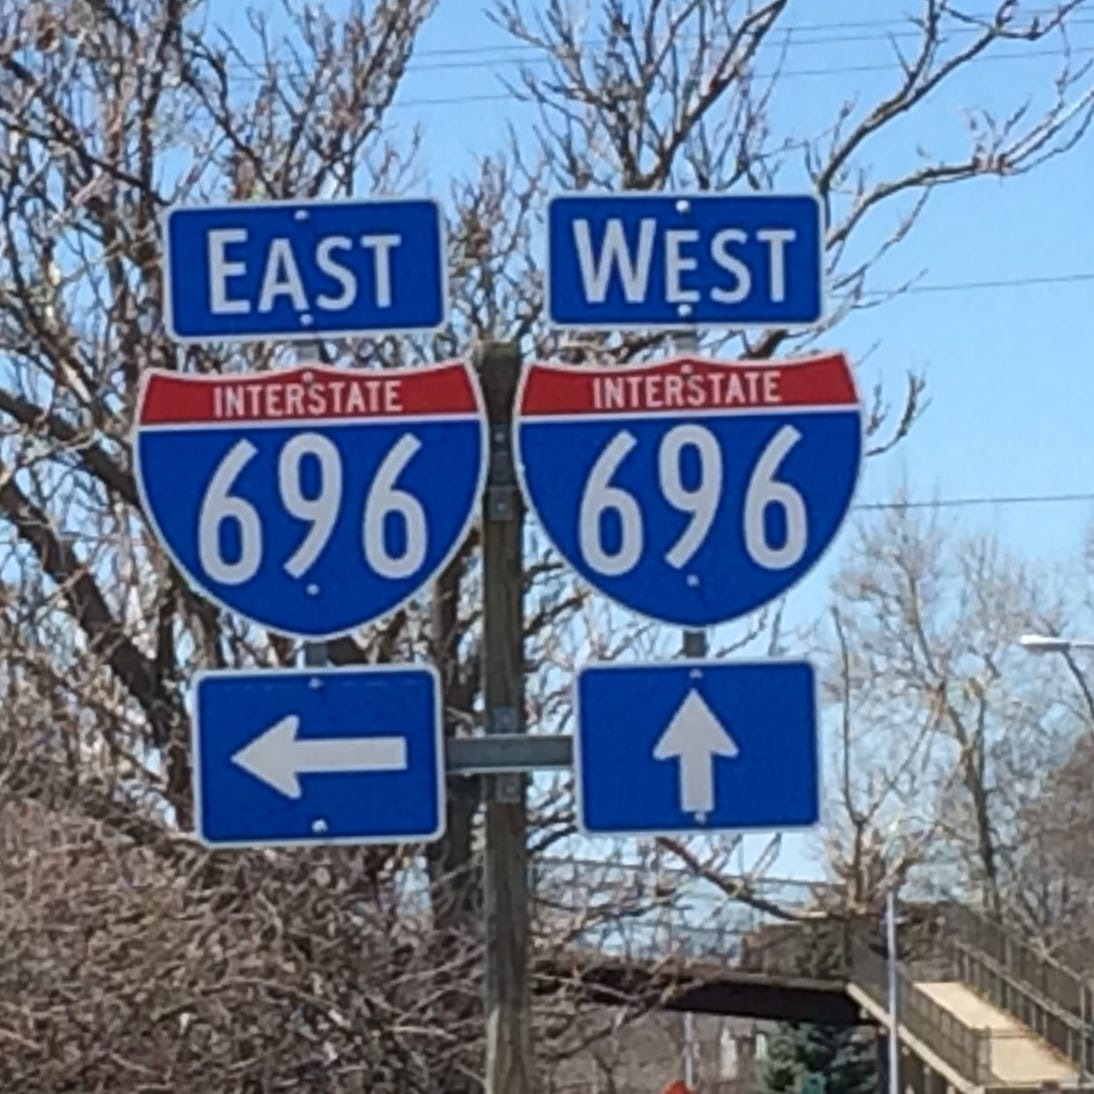 Fouts to gov: Roadwork tiff now 'public safety' issue